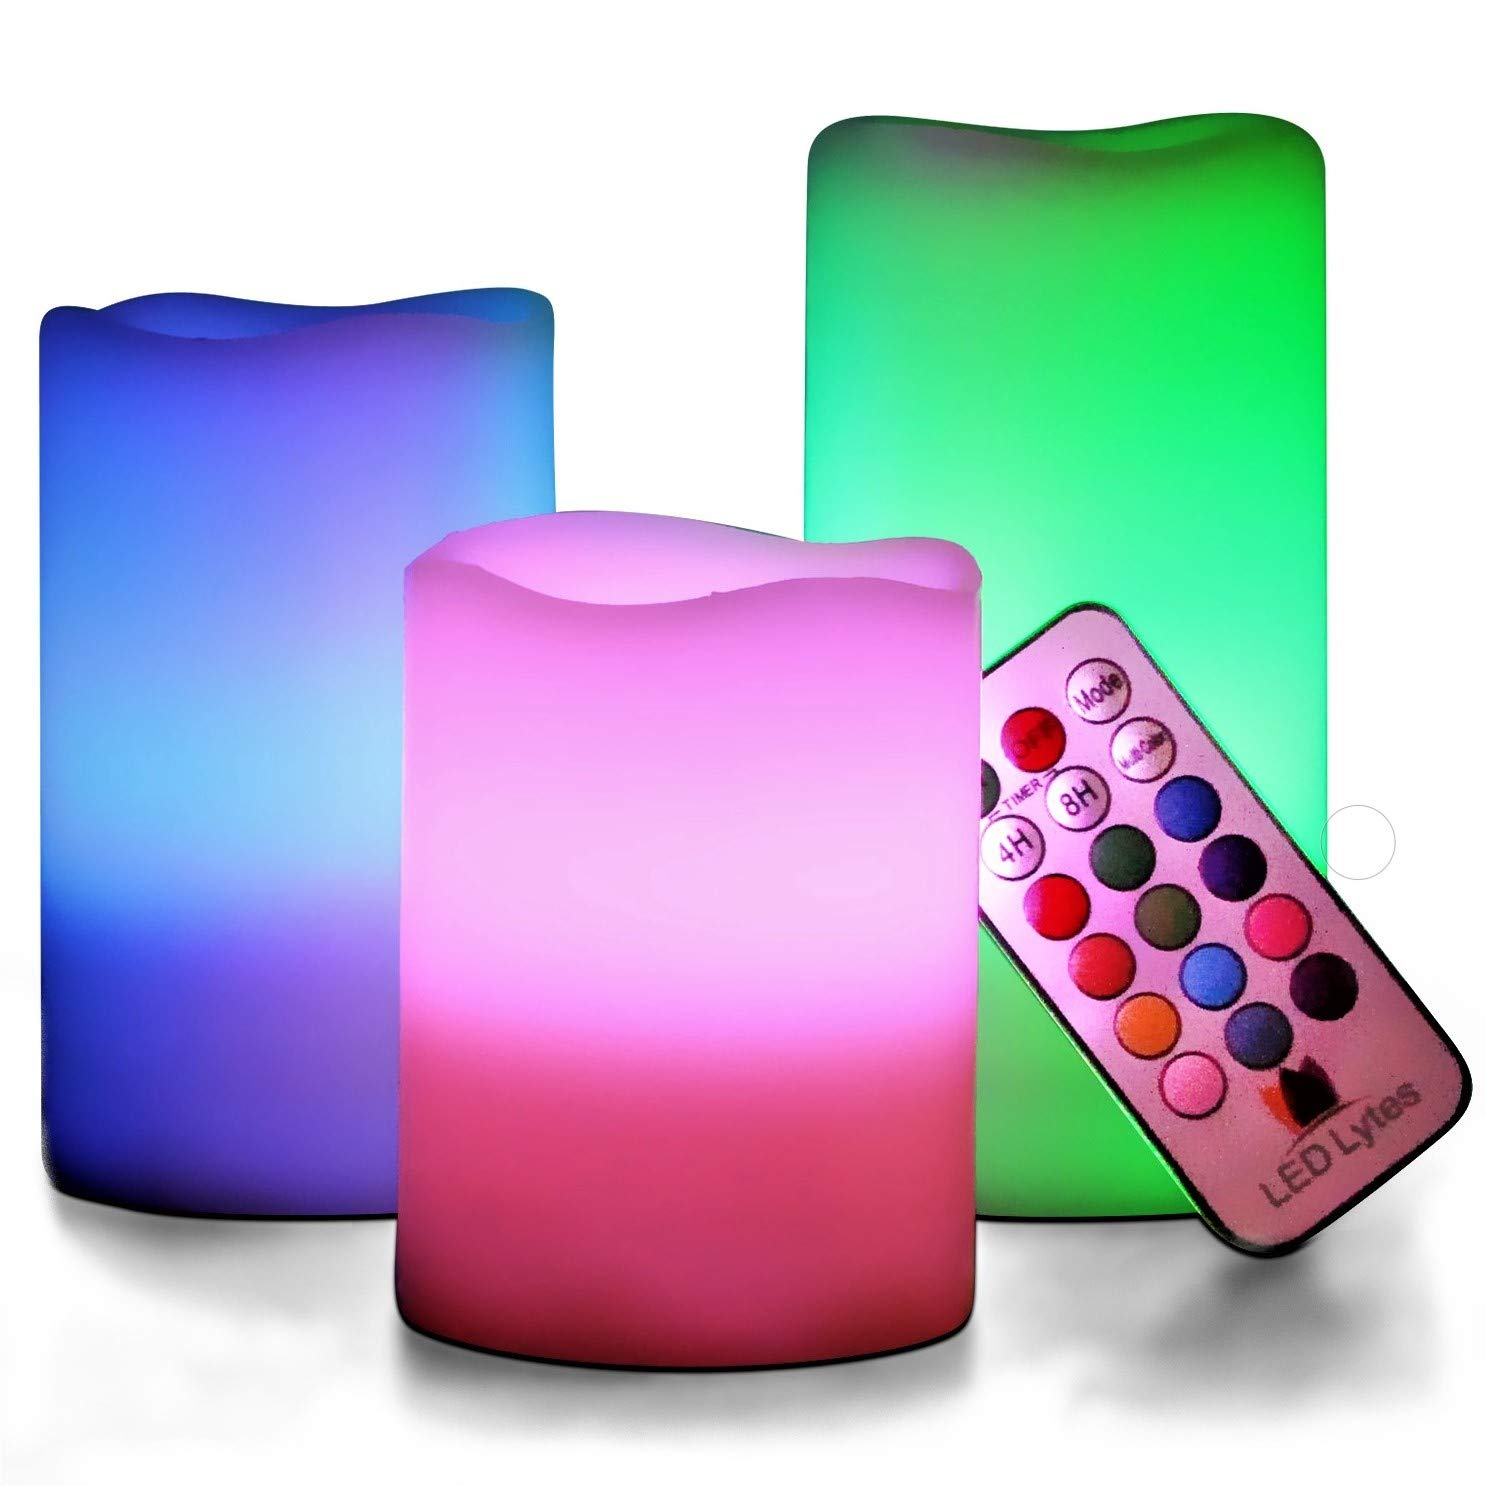 LED Lytes Flickering Flameless Candles Battery Operated Candles Vanilla Scented Set of 3 Round Ivory Wax Flickering Multi Colored Flame auto Off Timer Remote Control Weddings Gifts